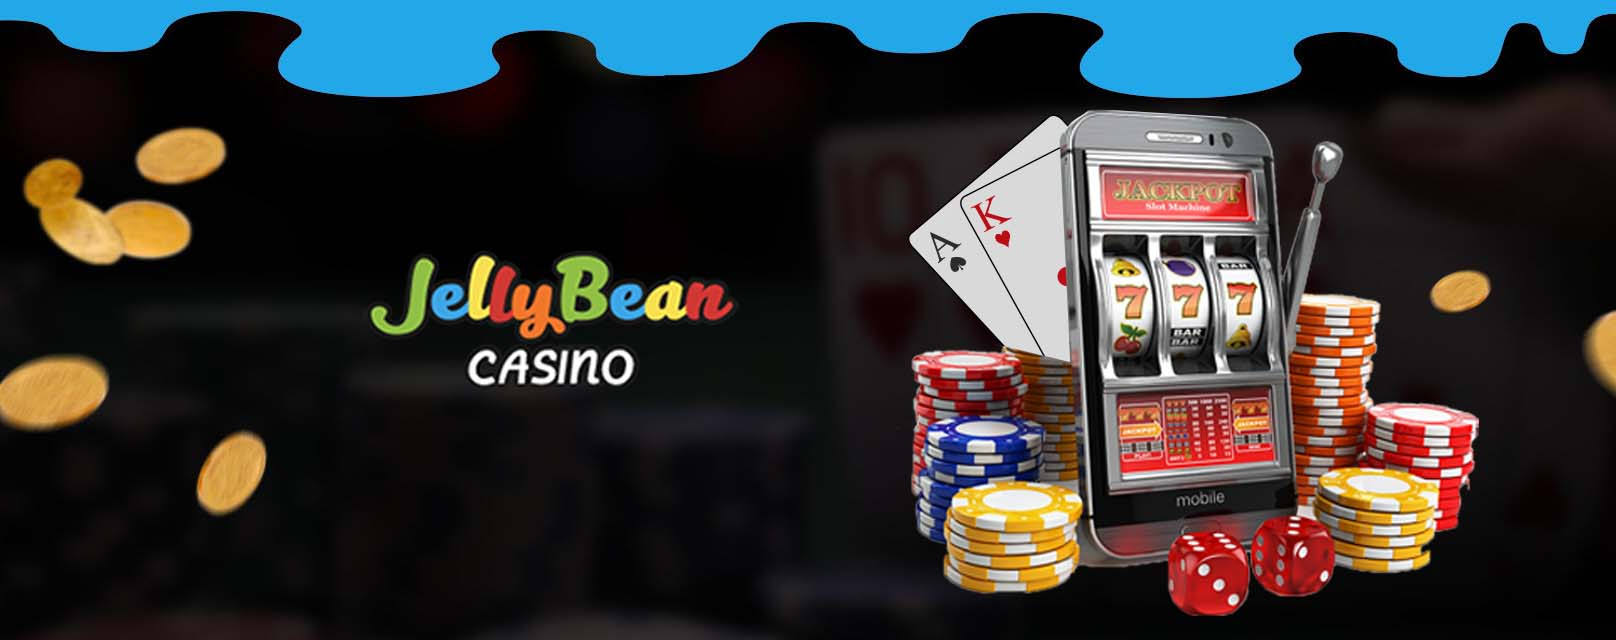 Free casino slot games for my phone